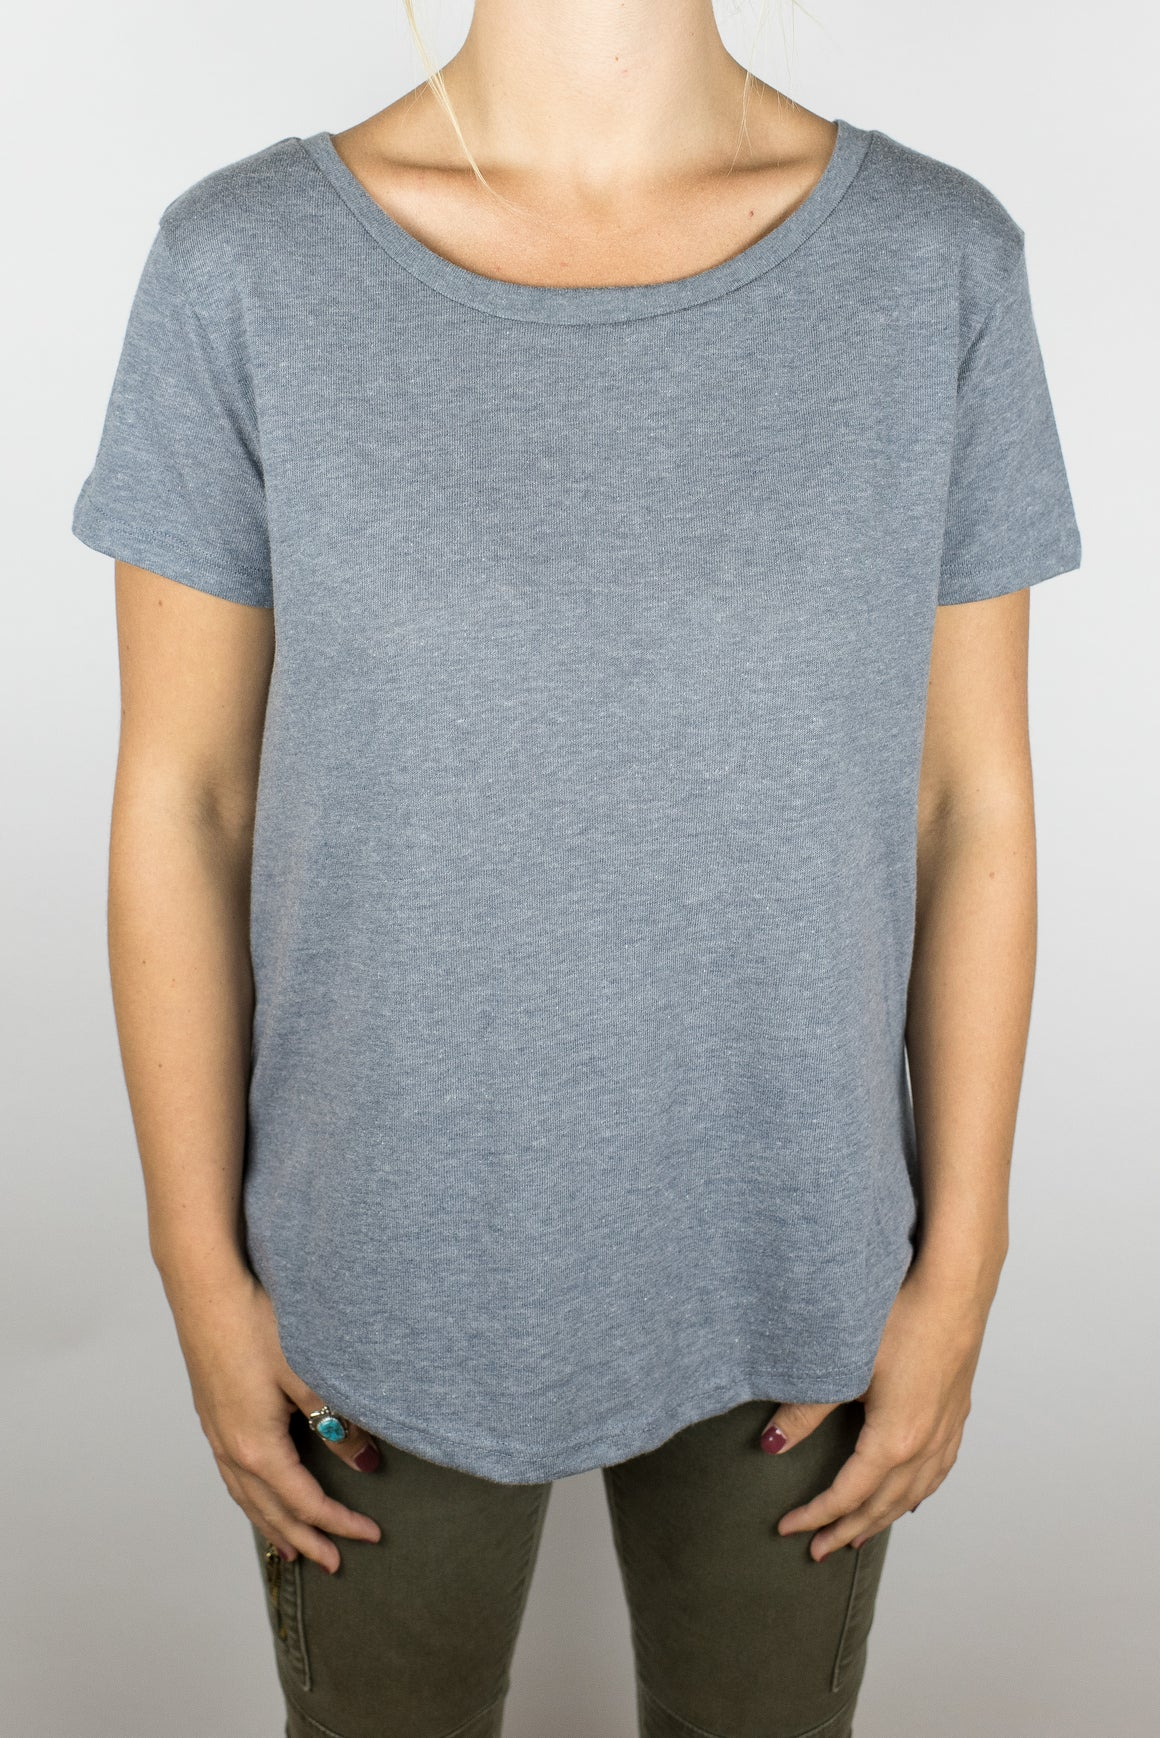 The Flare Tee in Cool Vintage Grey